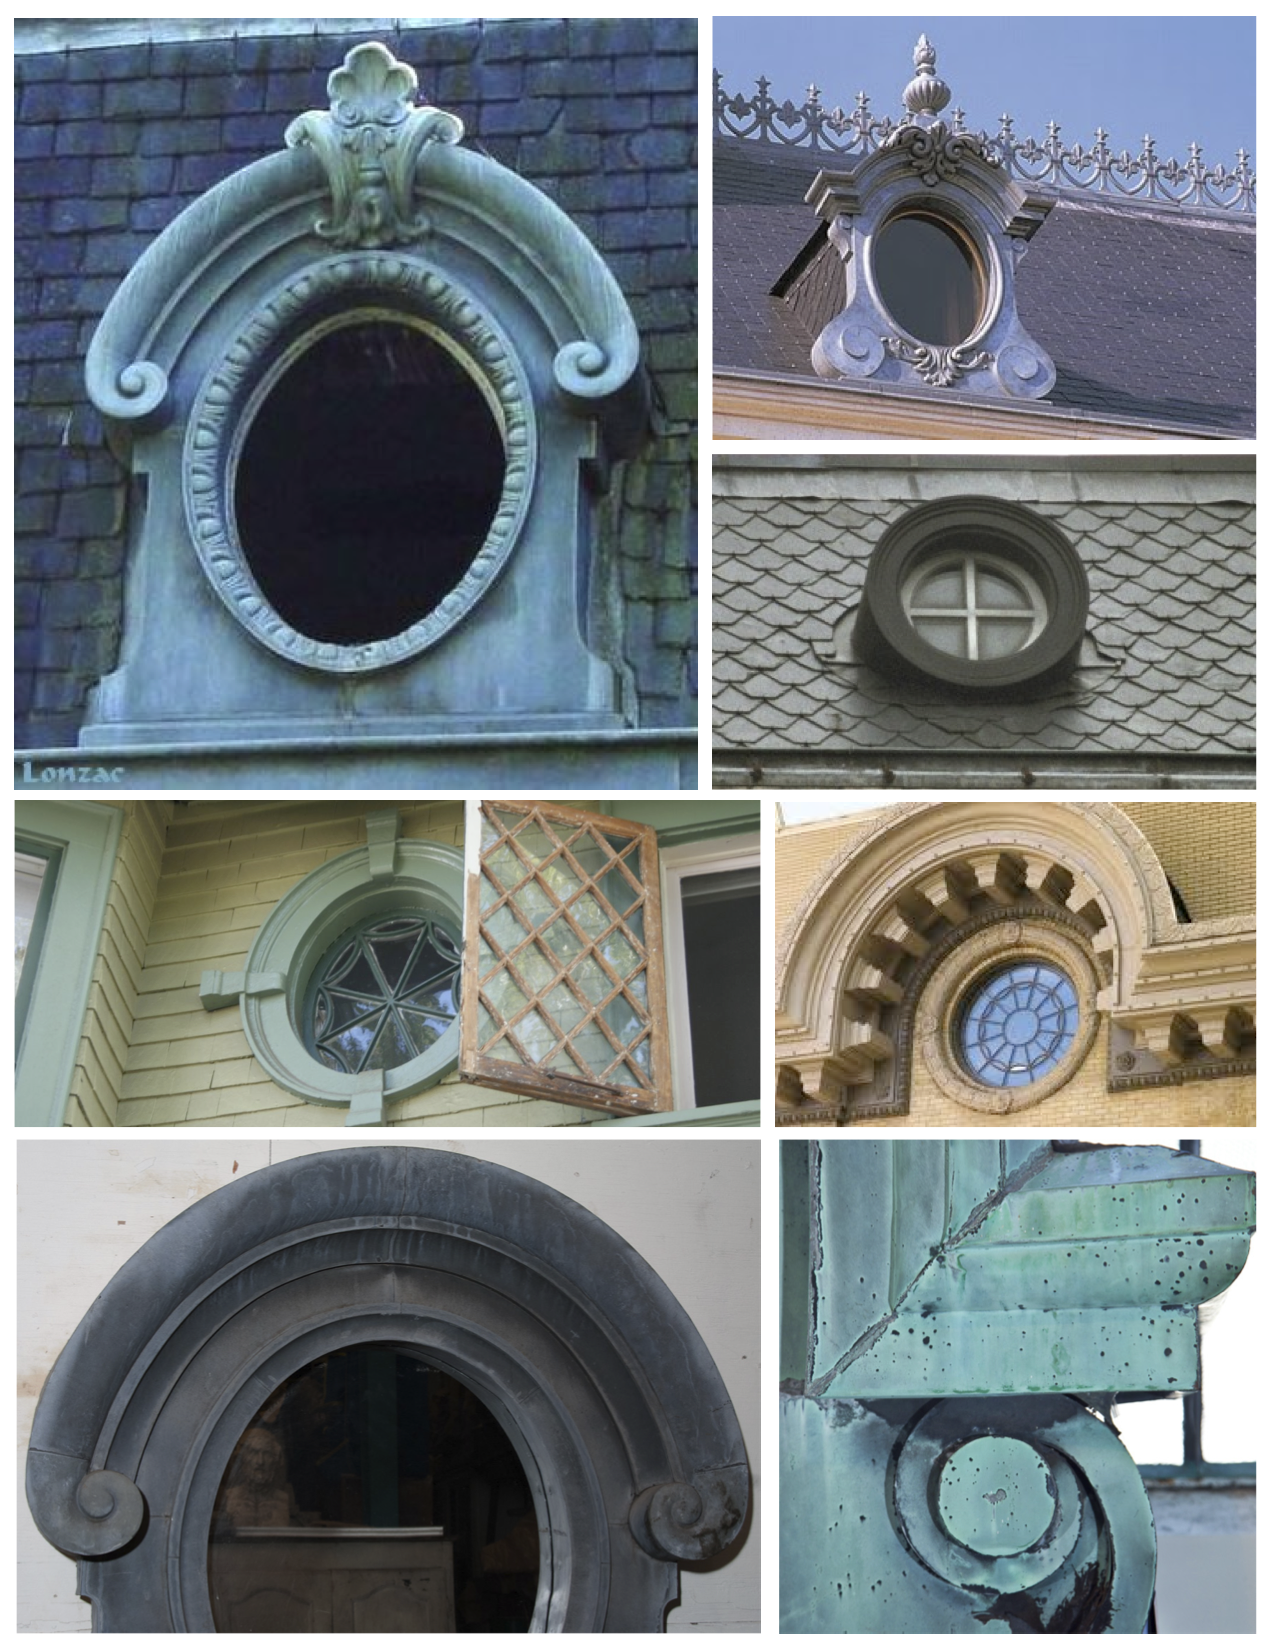 Architectural Embellishments Of Elegant Distinction The French Electrical Rough In Wiring Earthship Tire Walls Pictures To Pin On Ornate Round Dormer Collage